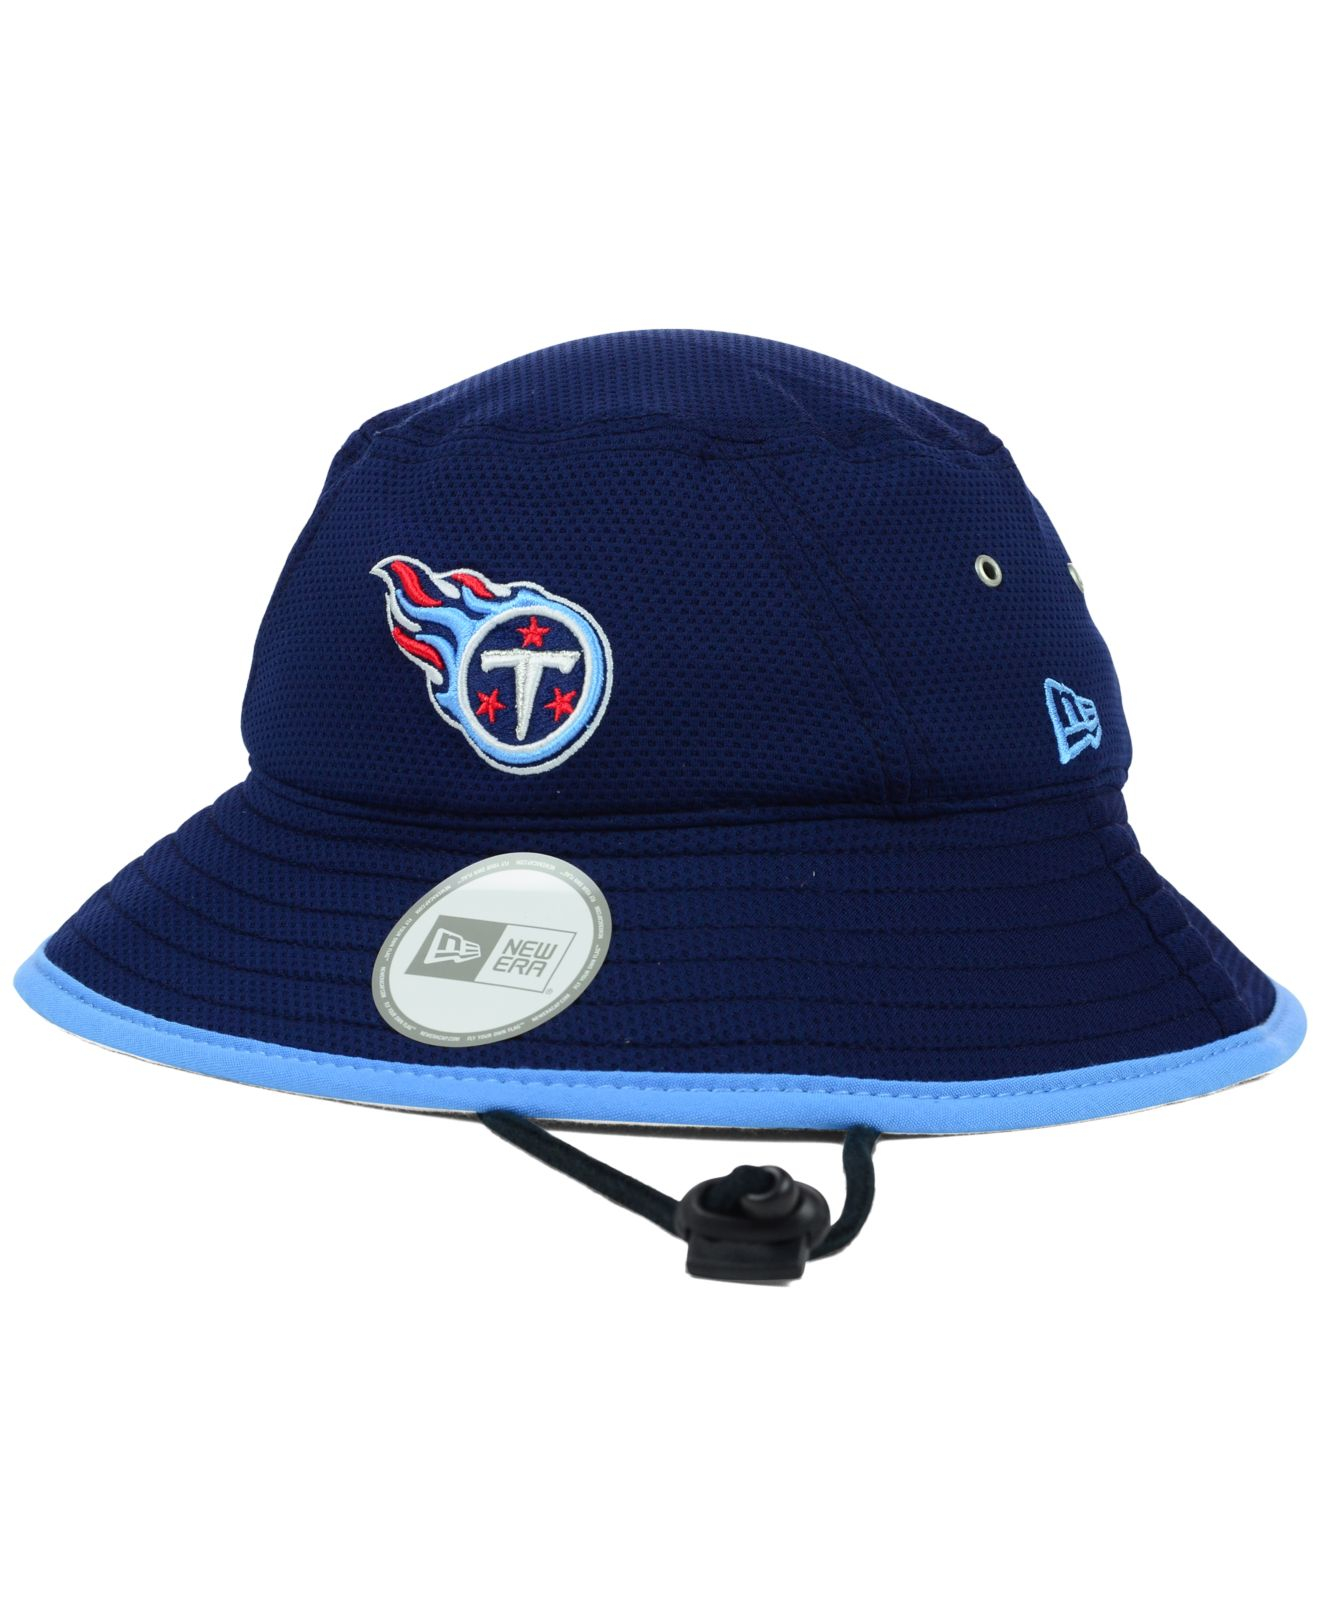 Lyst - KTZ Tennessee Titans Tc Training Bucket Hat in Blue for Men 7d1b60c2b3b